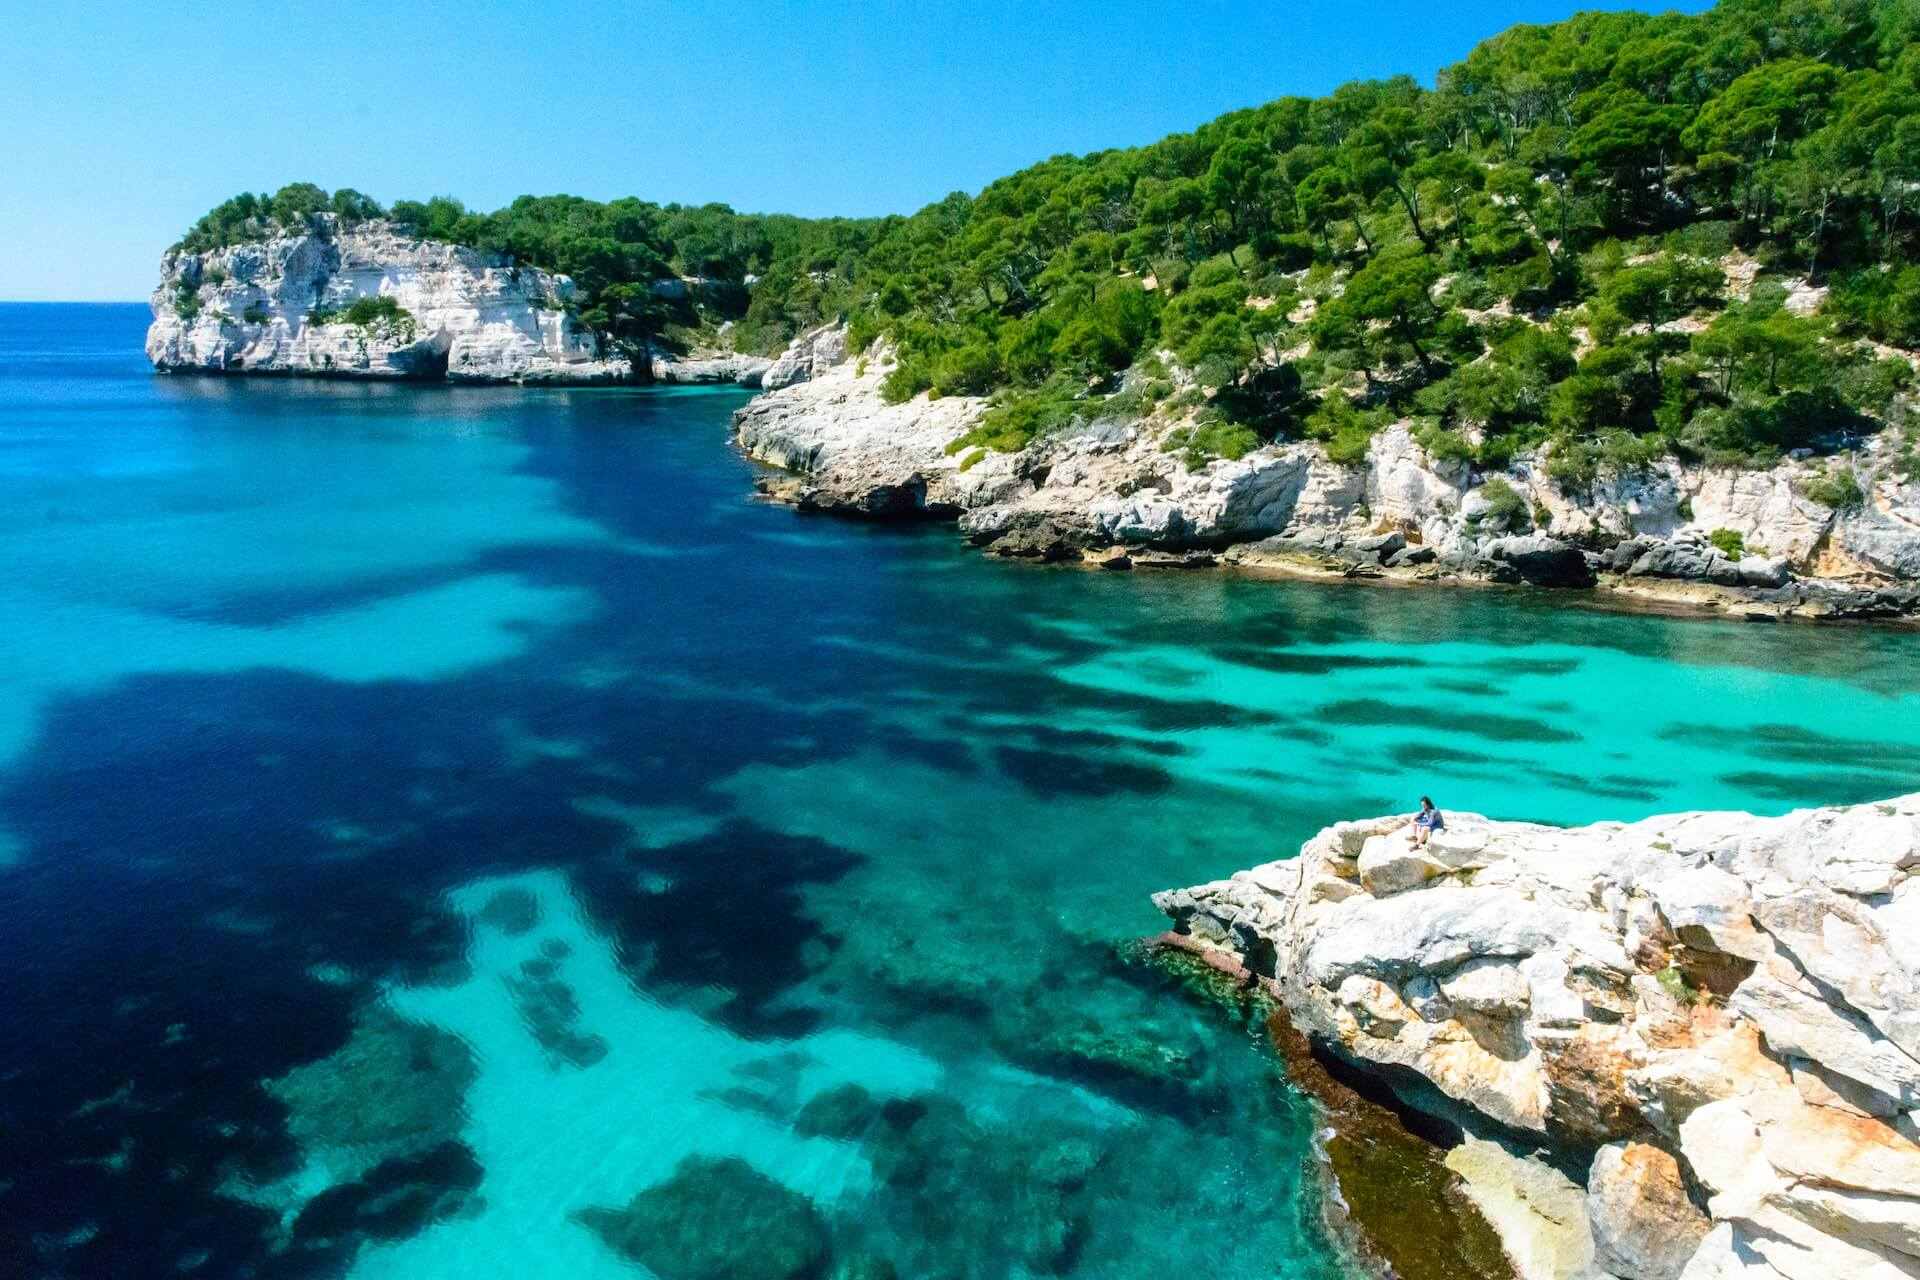 Menorca swimming in clear waters